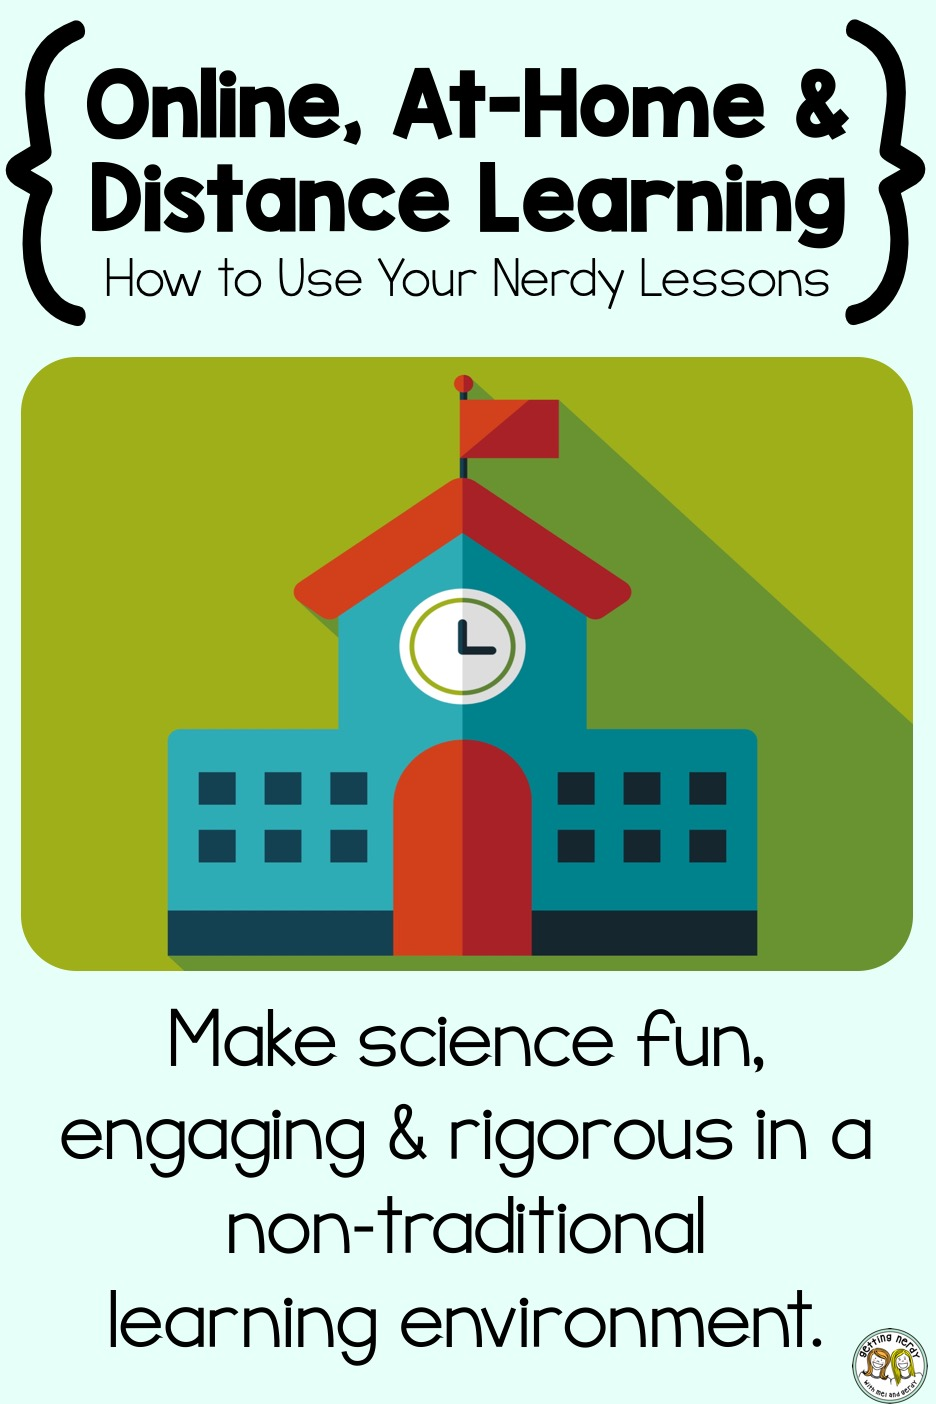 Online, Distance and At-Home Learning: How to Use Your Nerdy Lessons